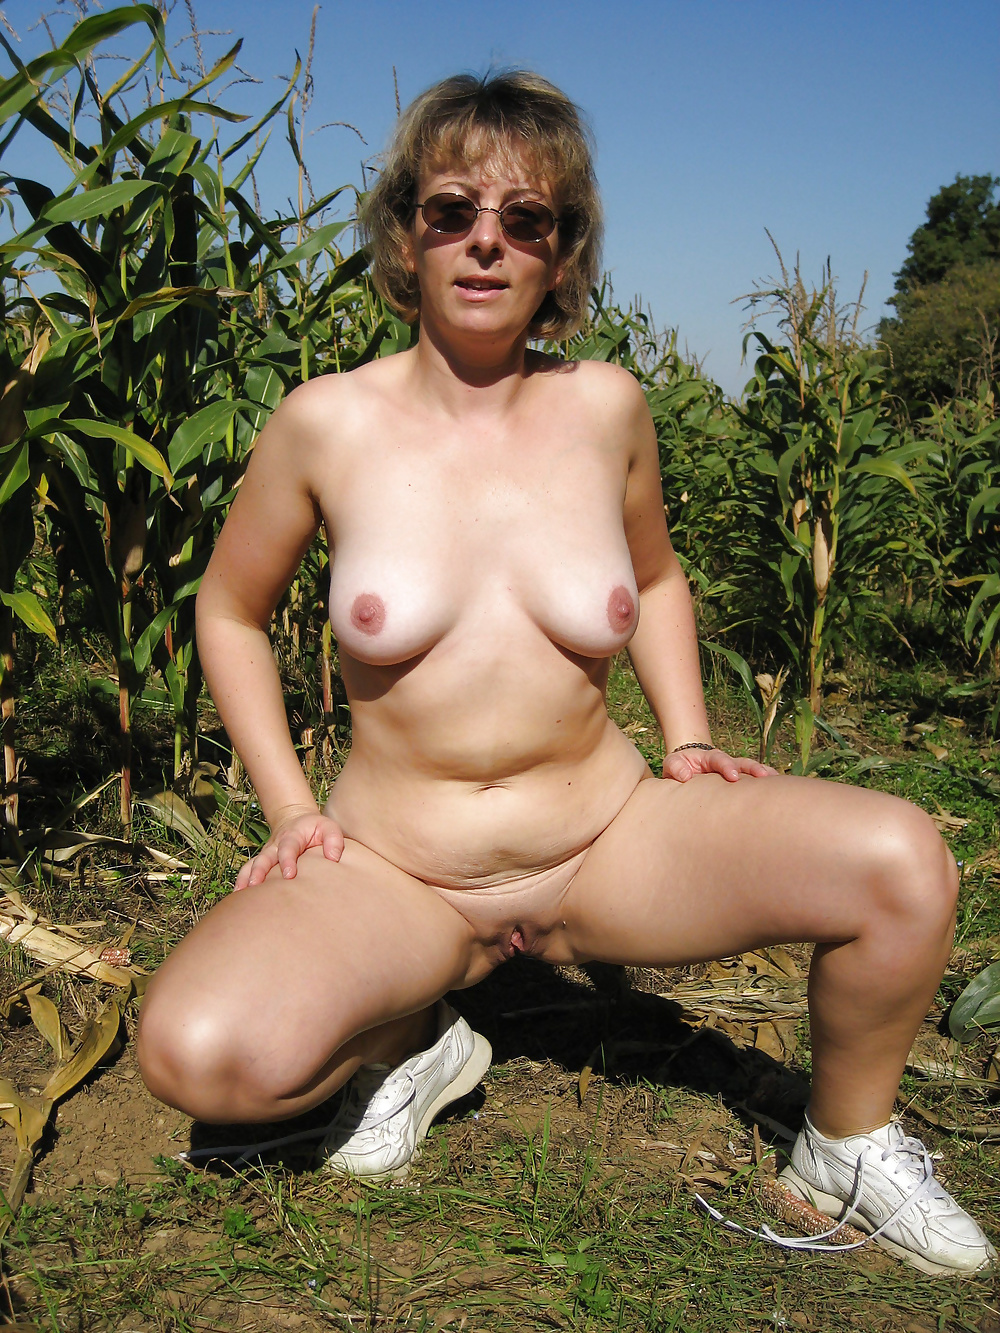 Bd nude mature women pic — pic 2